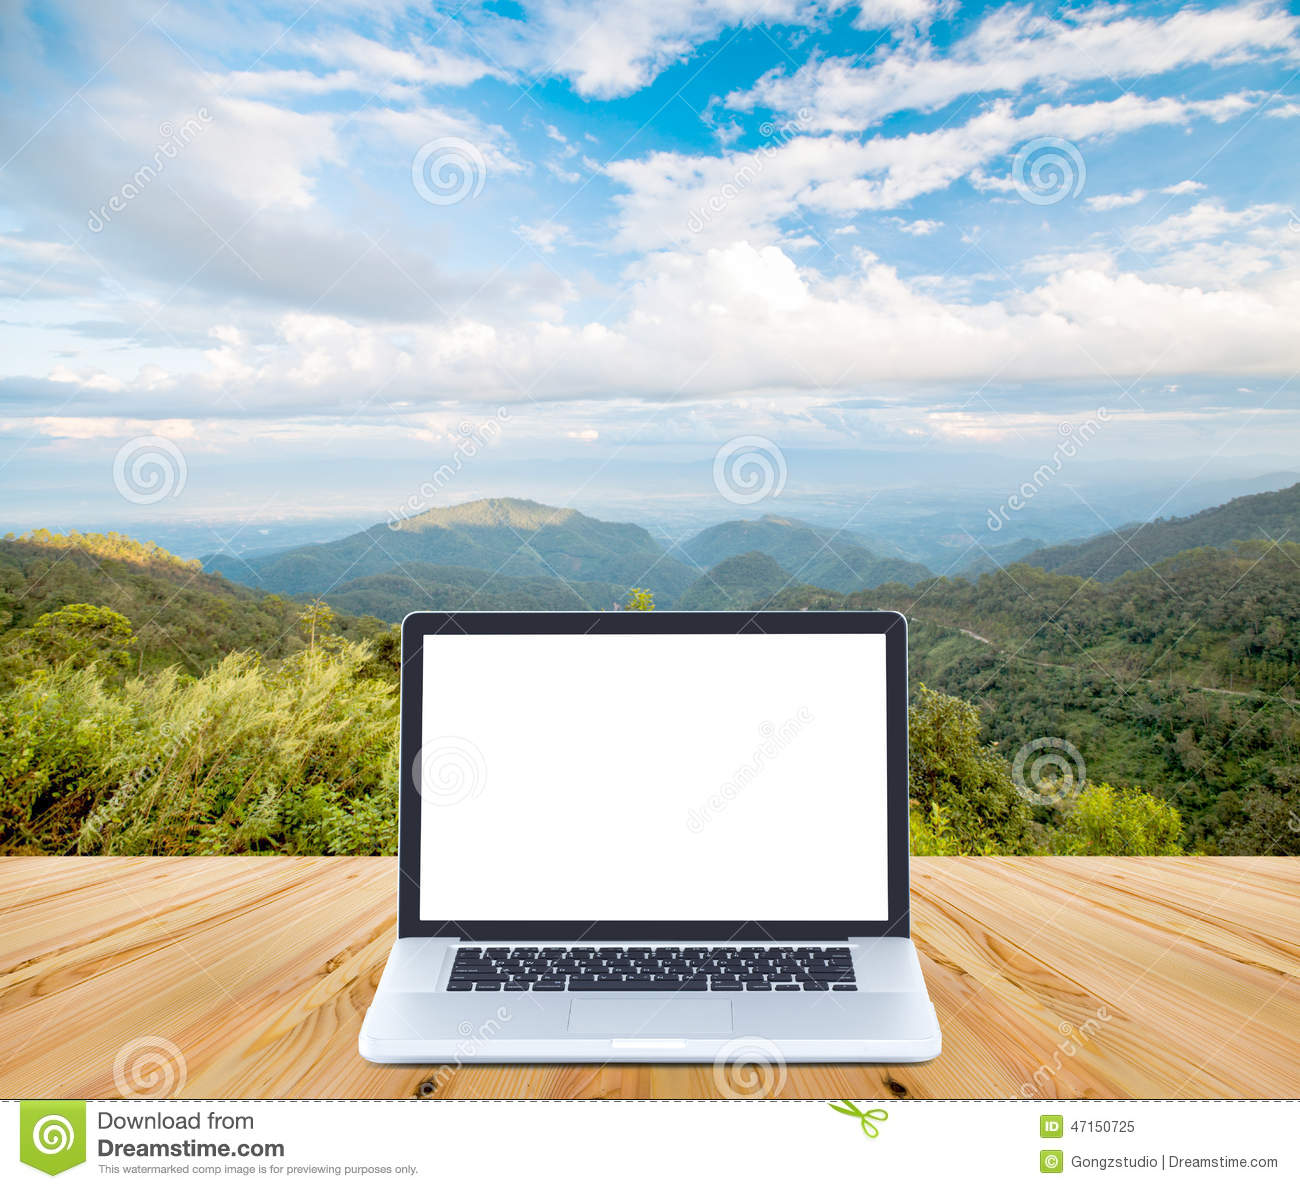 Blank Screen Laptop Computer On Wood With Mountain And